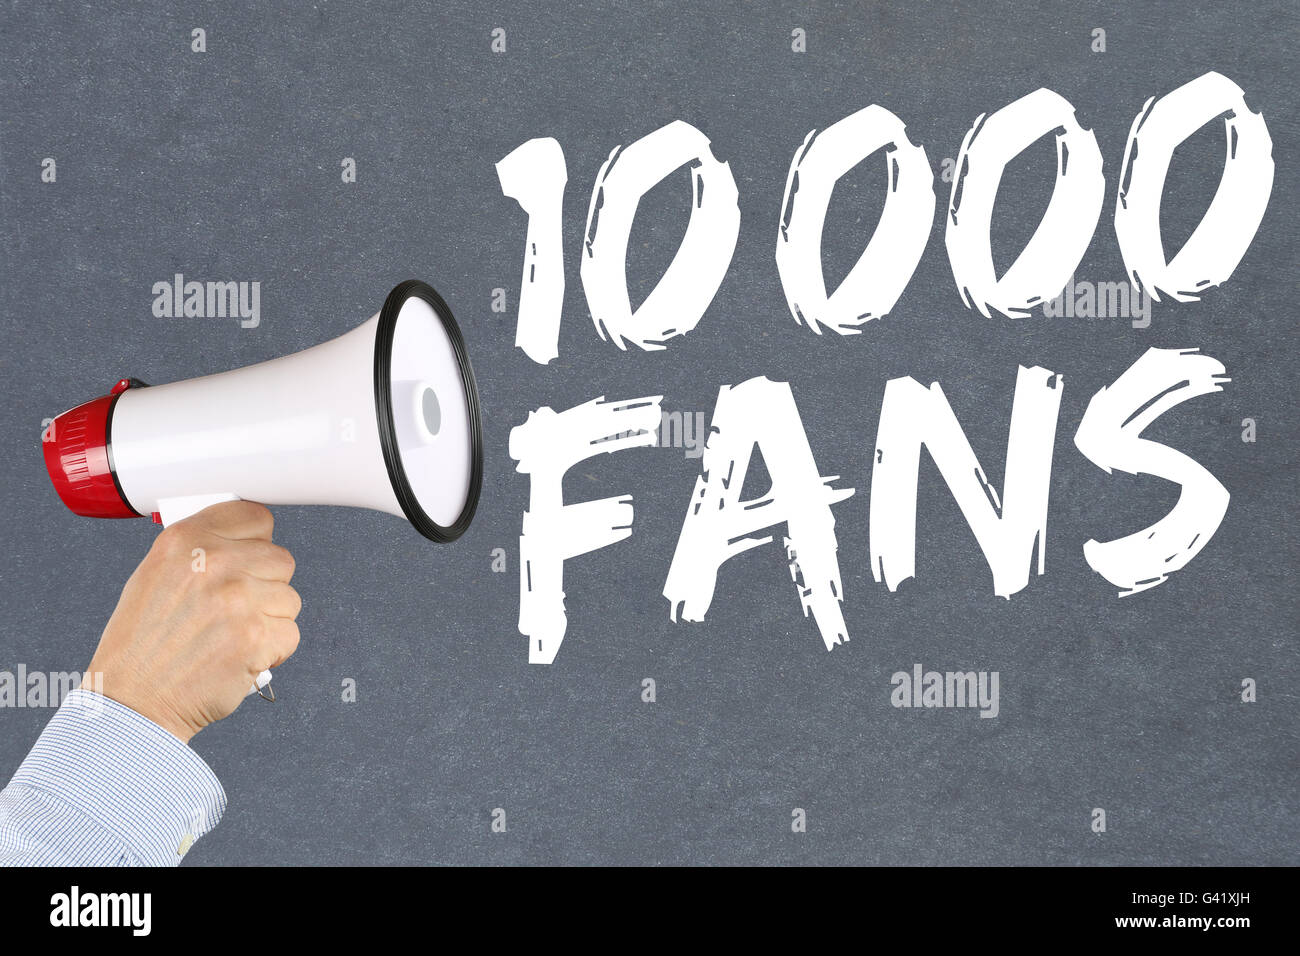 10000 fans likes social networking media hand with megaphone - Stock Image